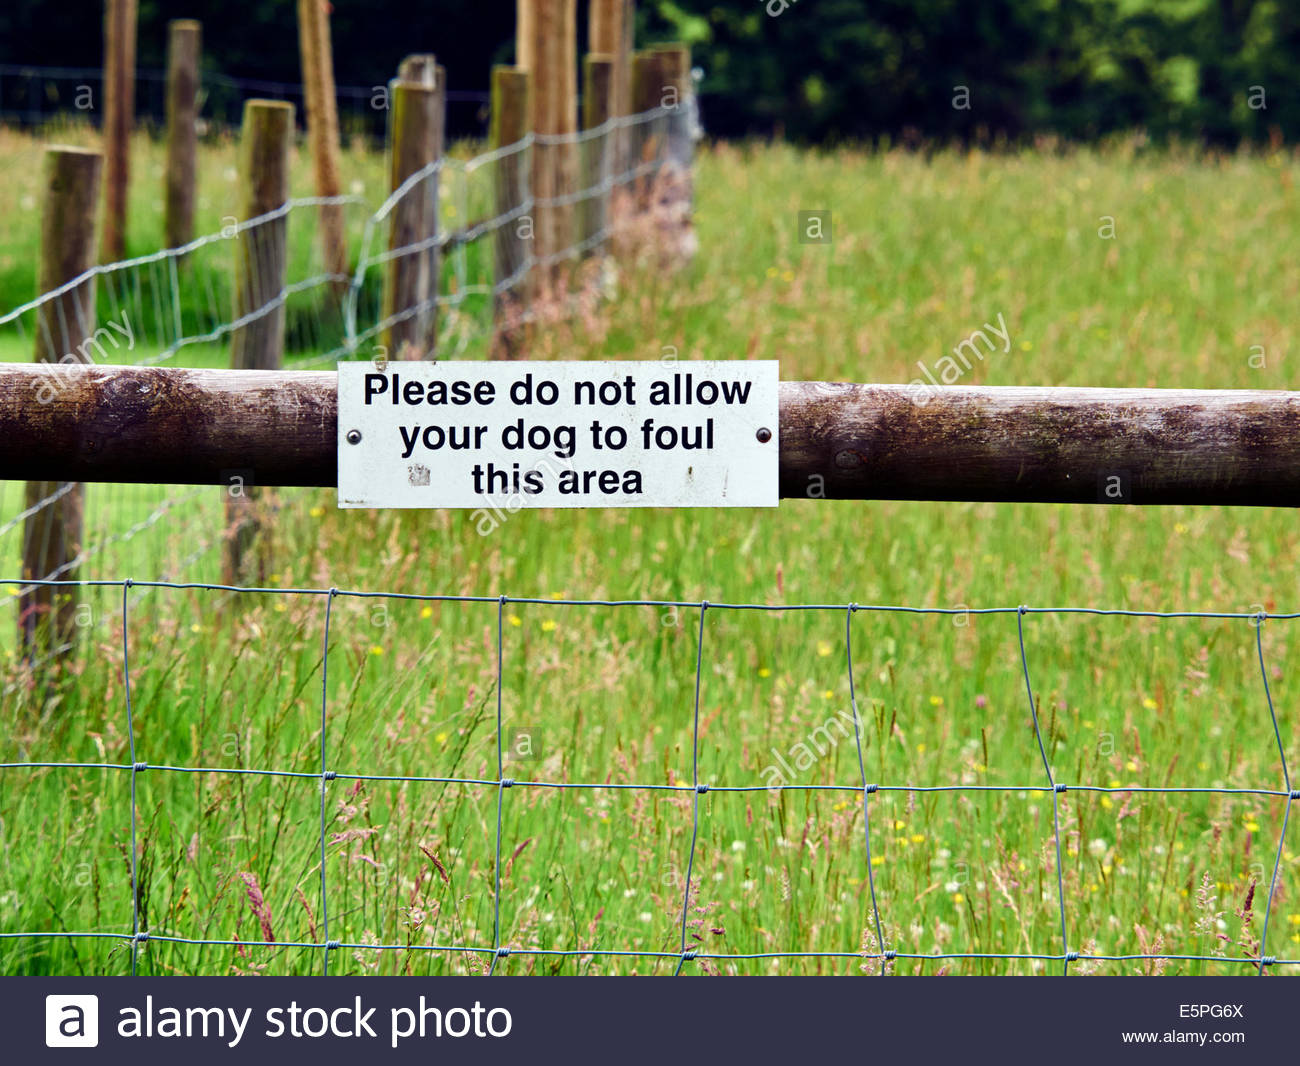 please do not allow your dog to foul this area sign on a wooden post leading to field of grasses and wildflowers - Stock Image